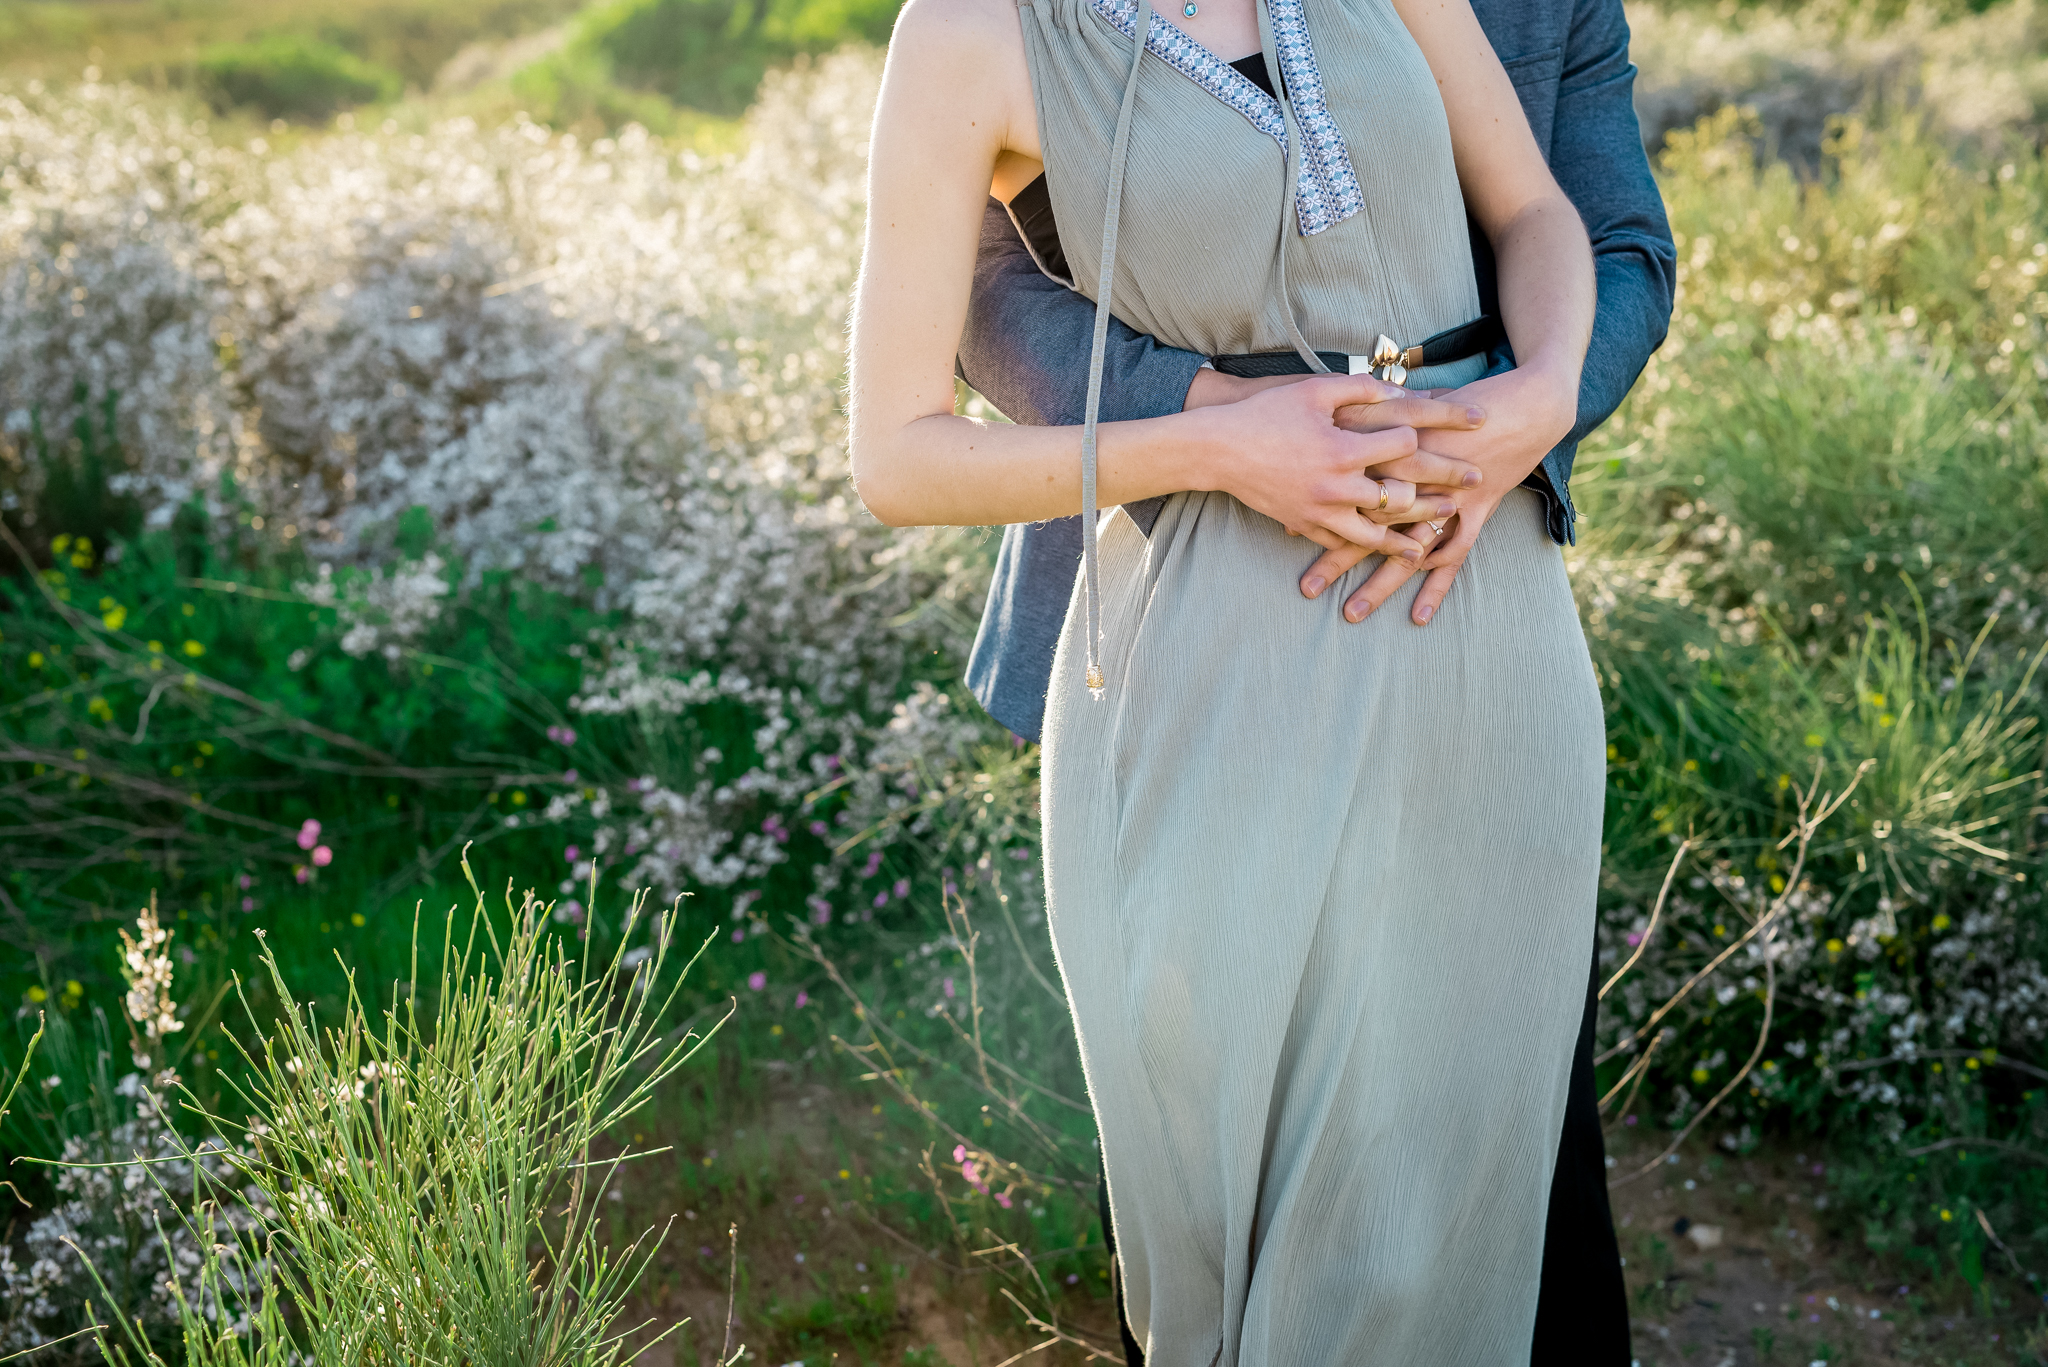 Cliffside-beach-engagement-session-hadera-israel-kate-giryes-photography-9090.jpg